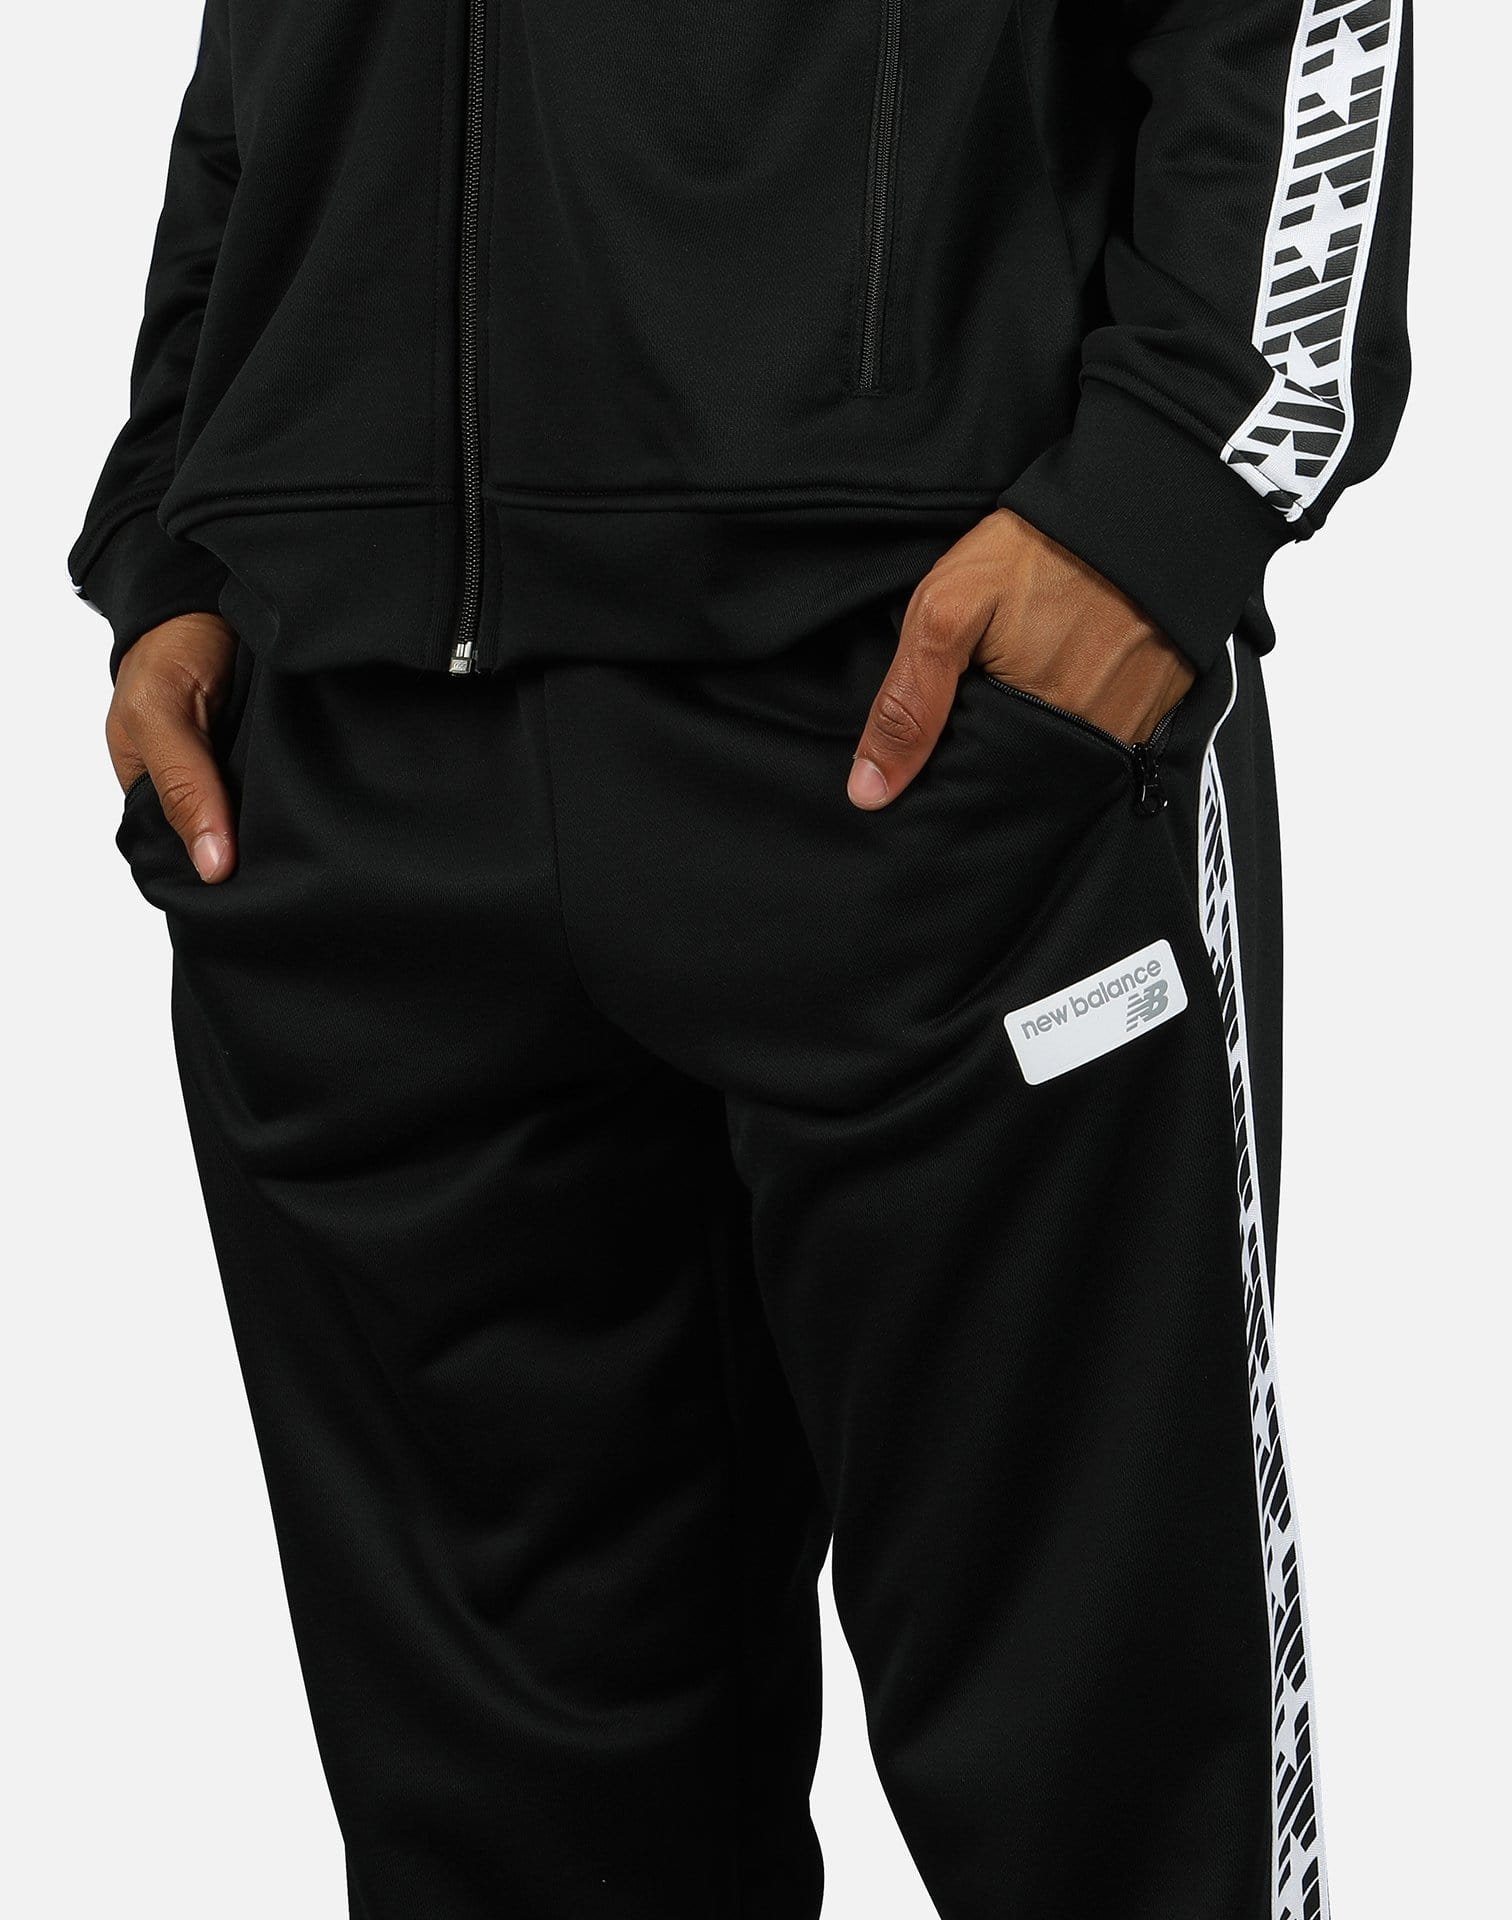 New Balance Men's NB Athletics Classic Track Pants